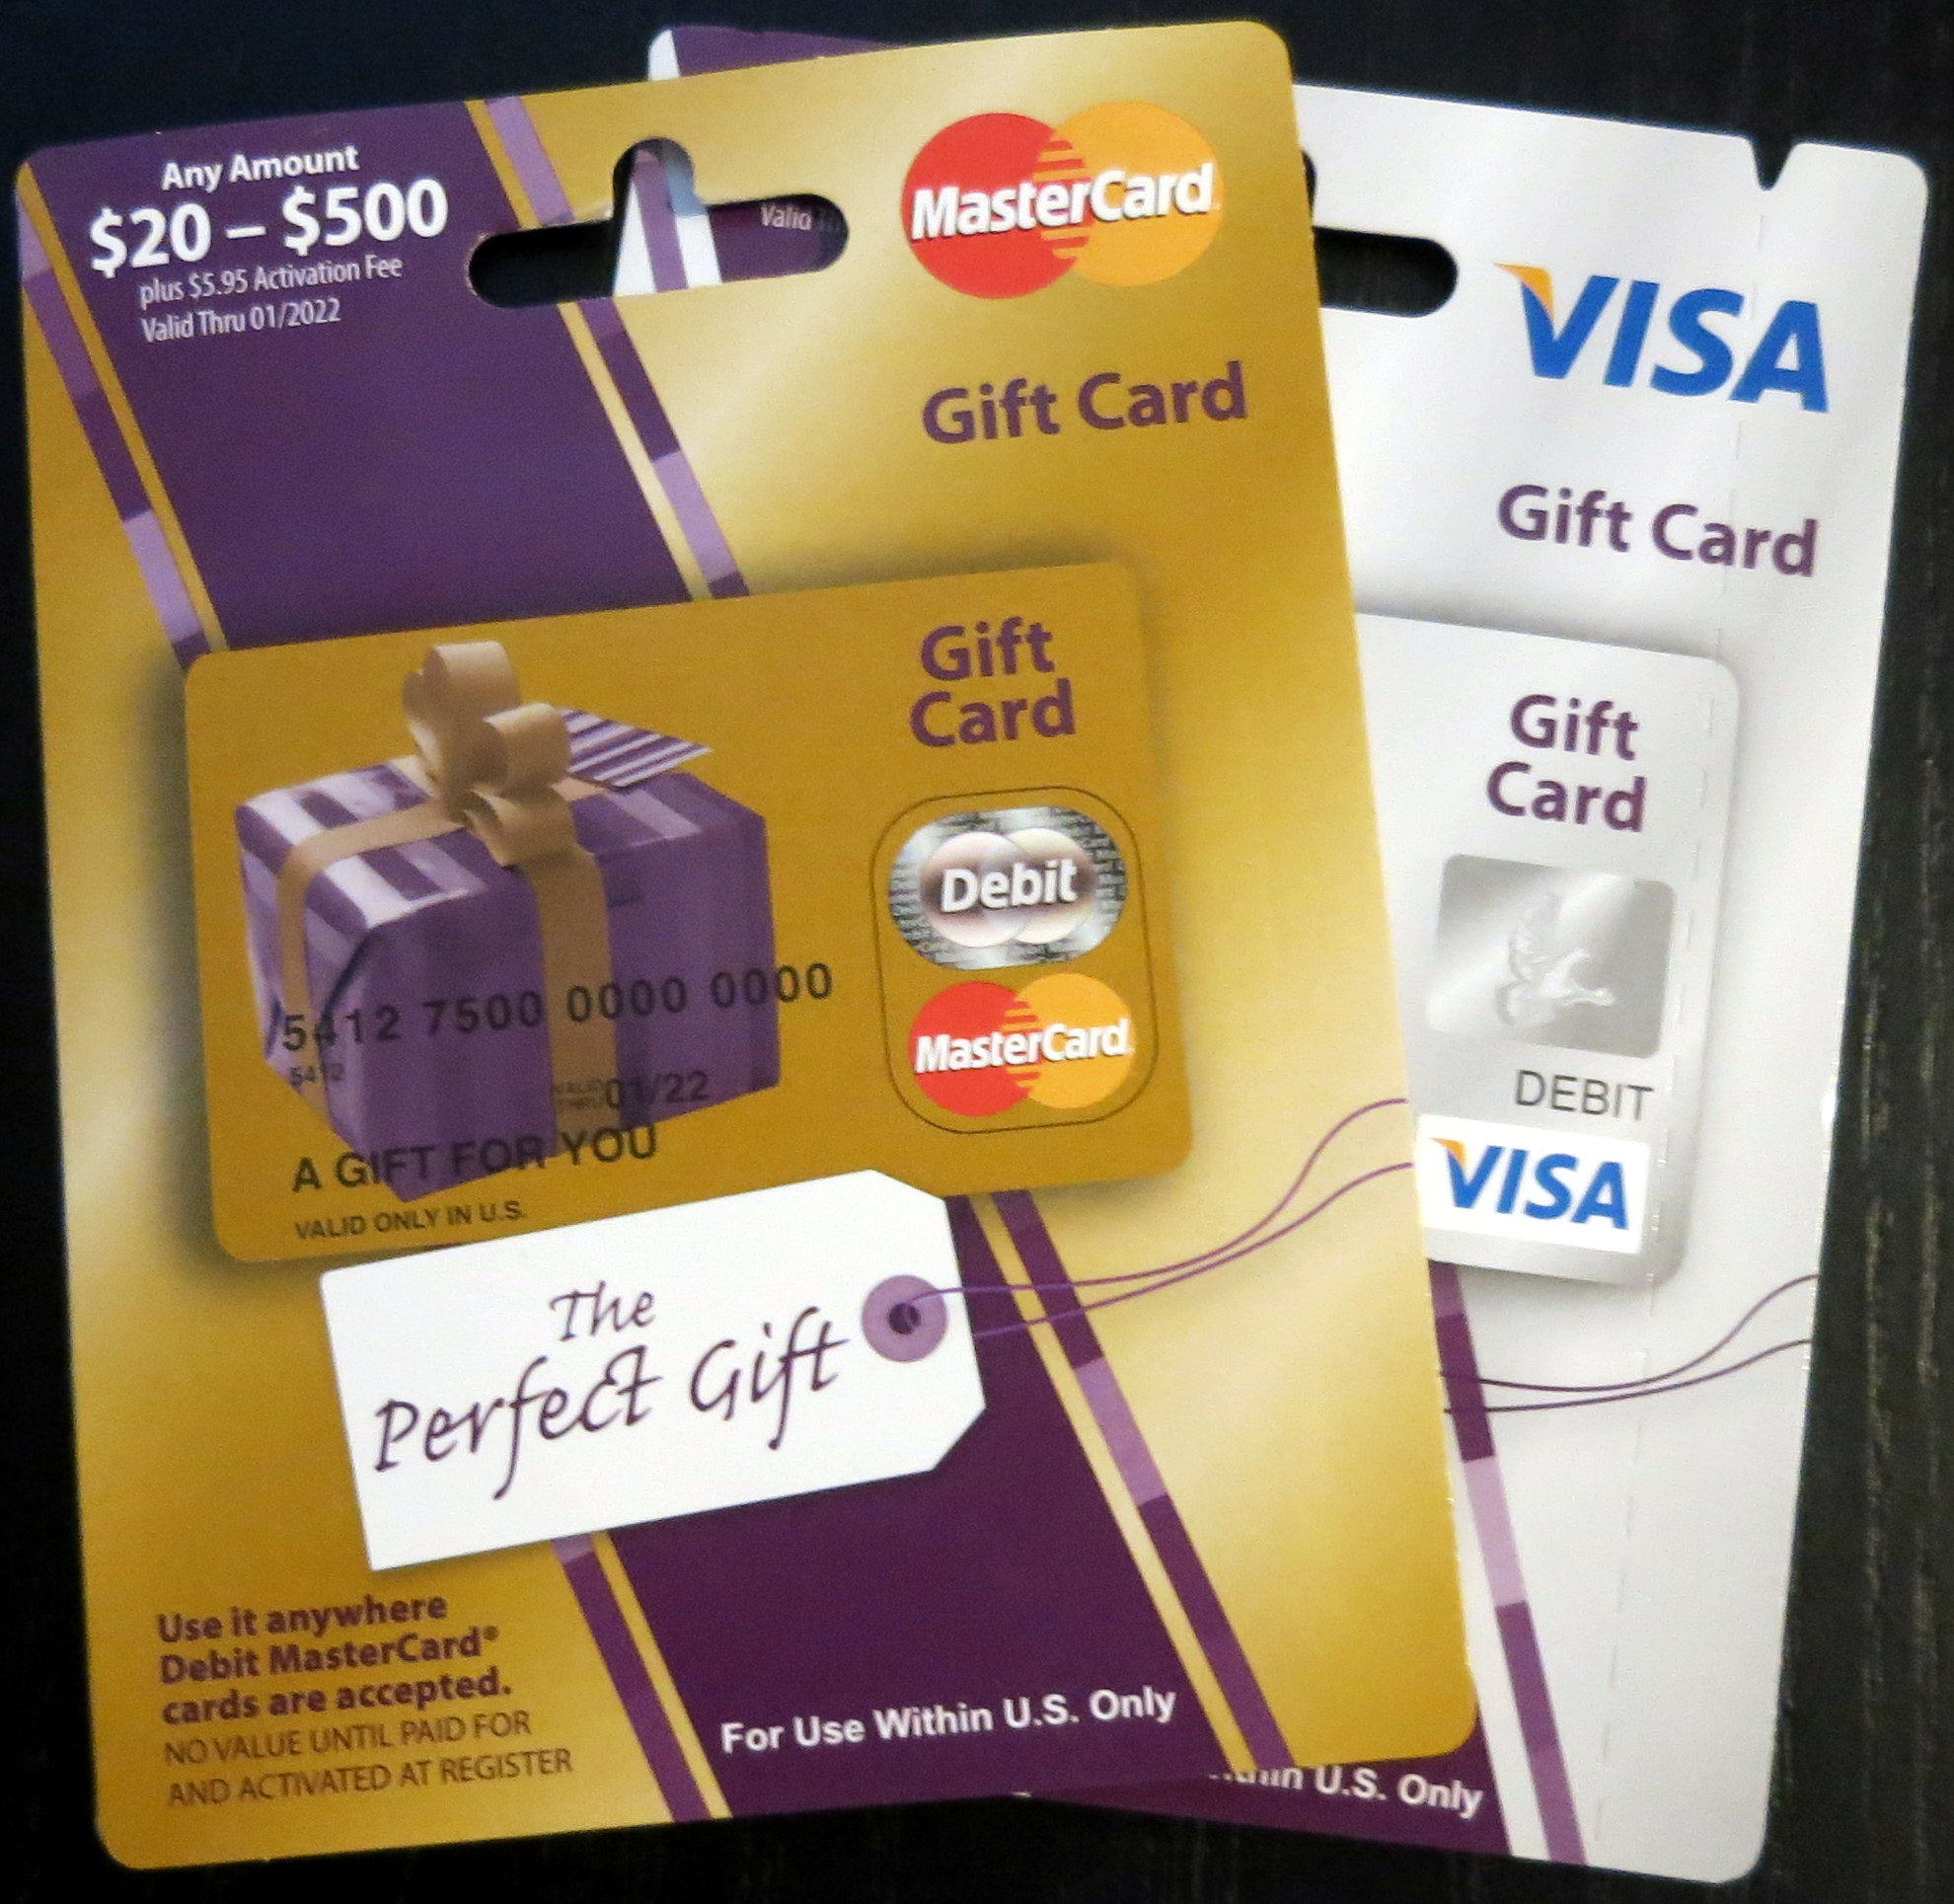 visa gift card prepaid mastercard - Purchase Prepaid Card Online